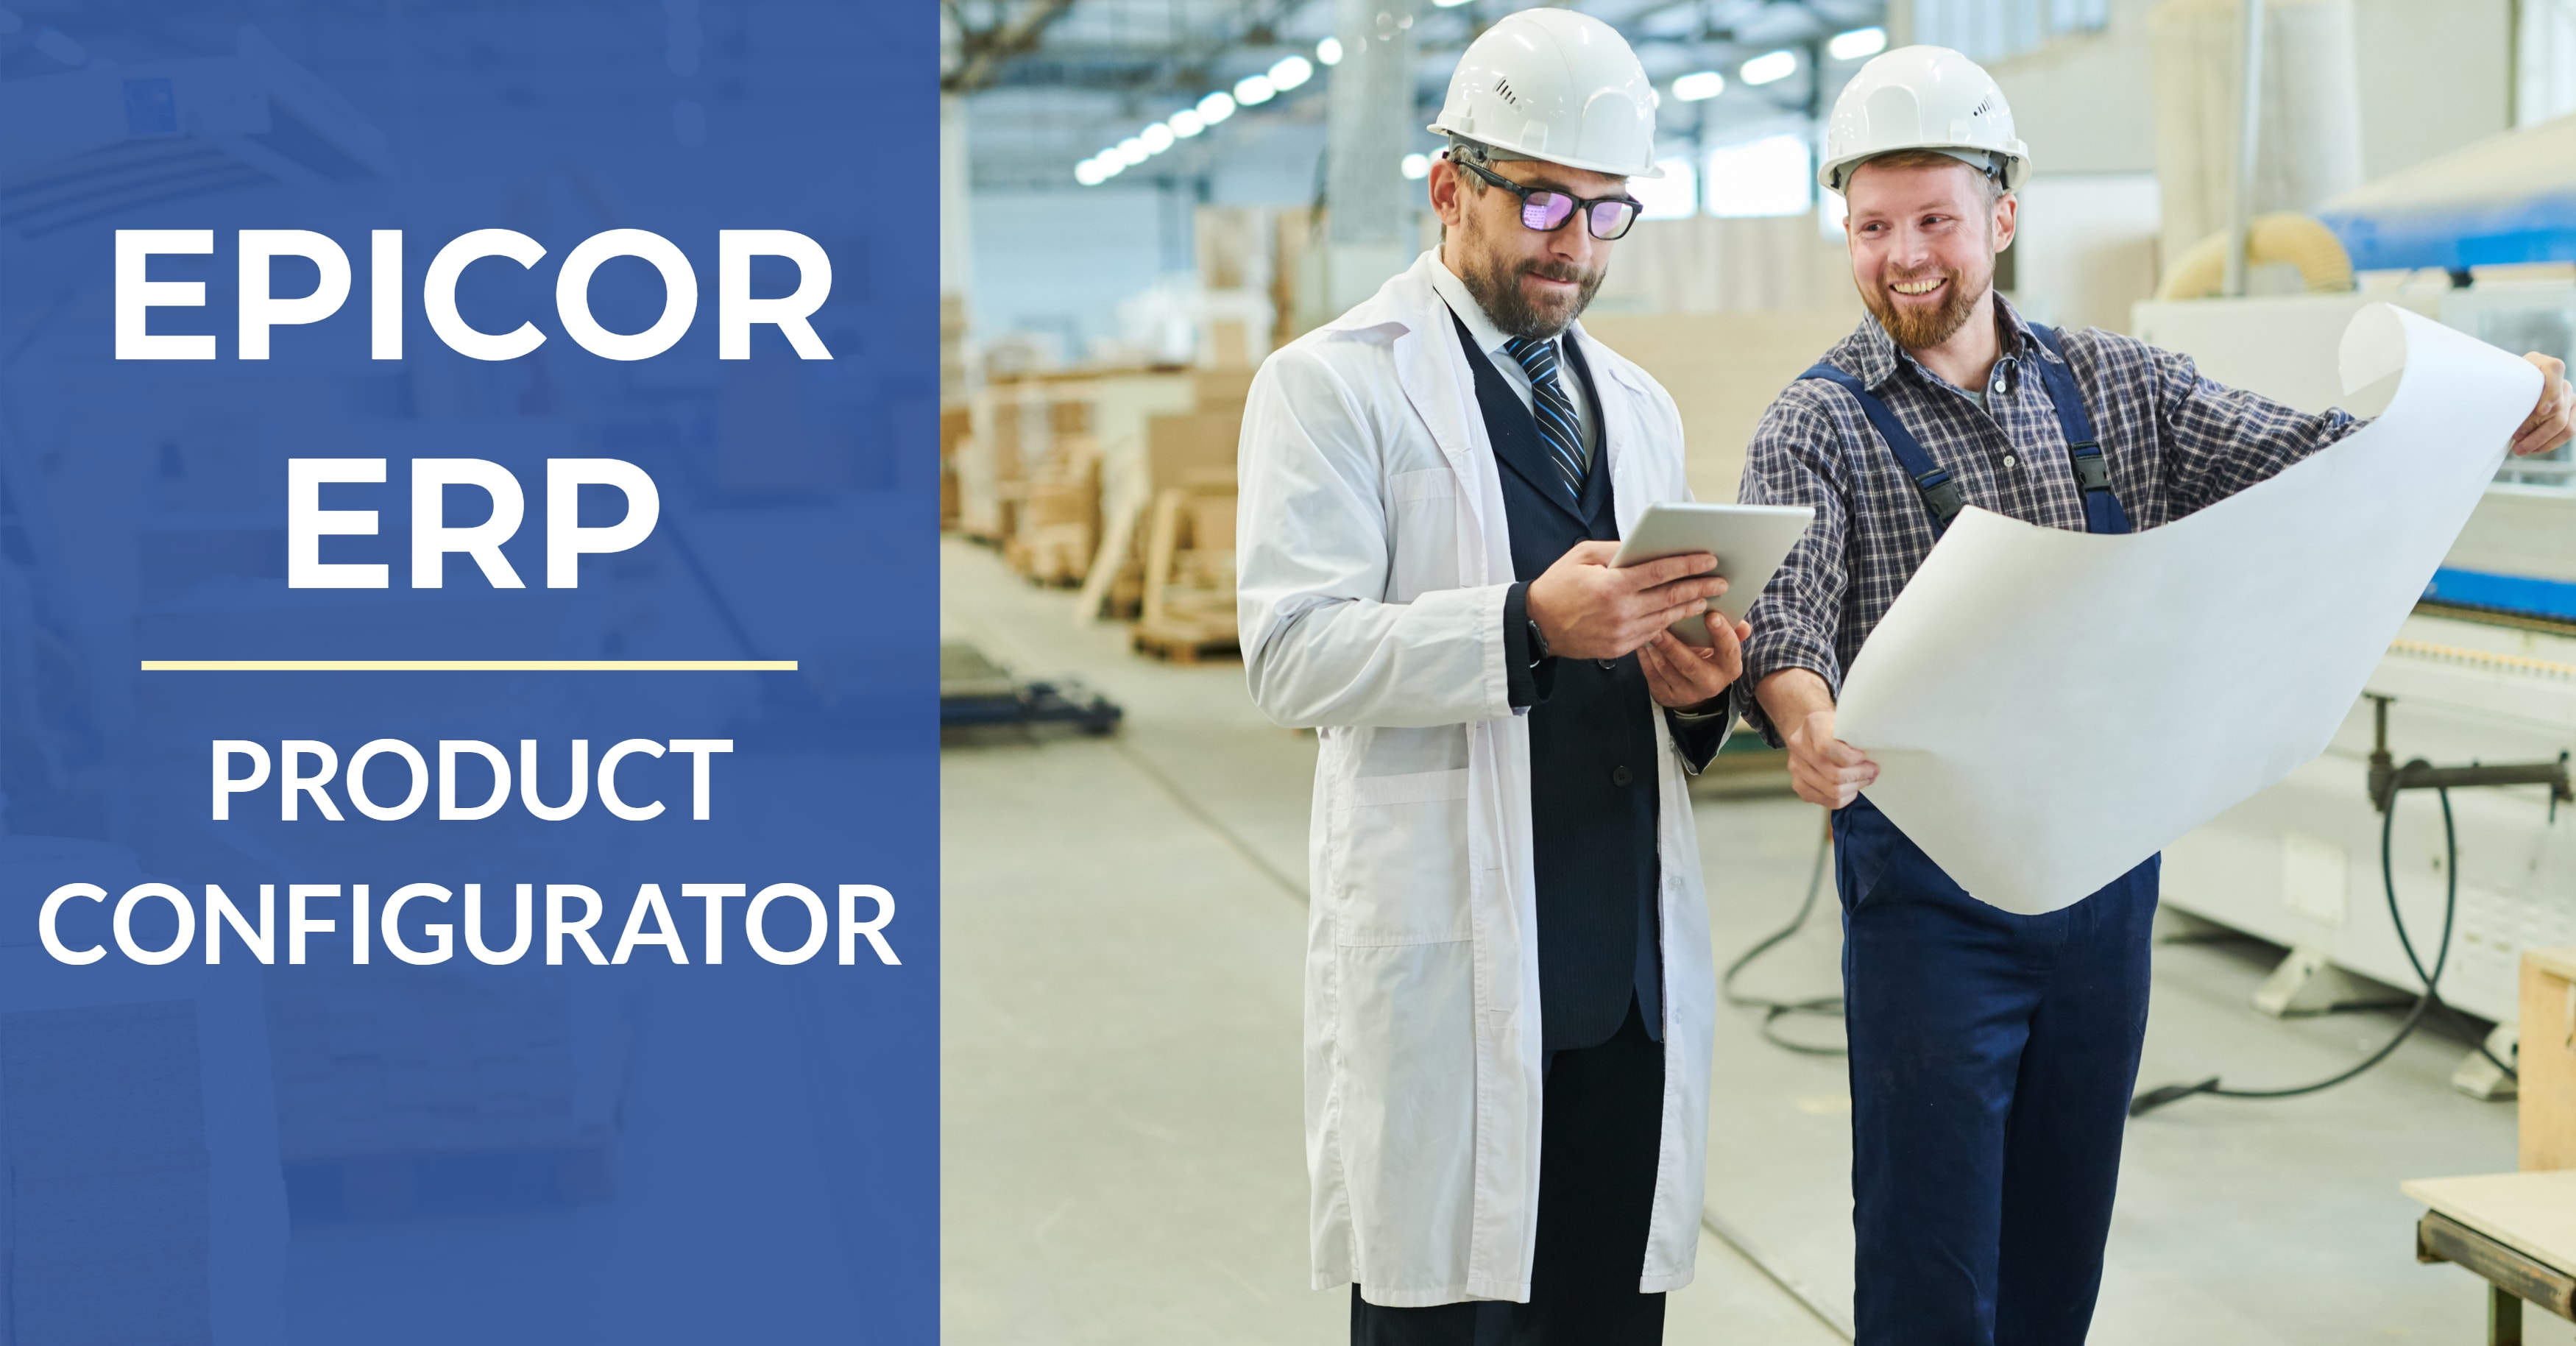 The Rundown On Epicor ERP's Product Configurator